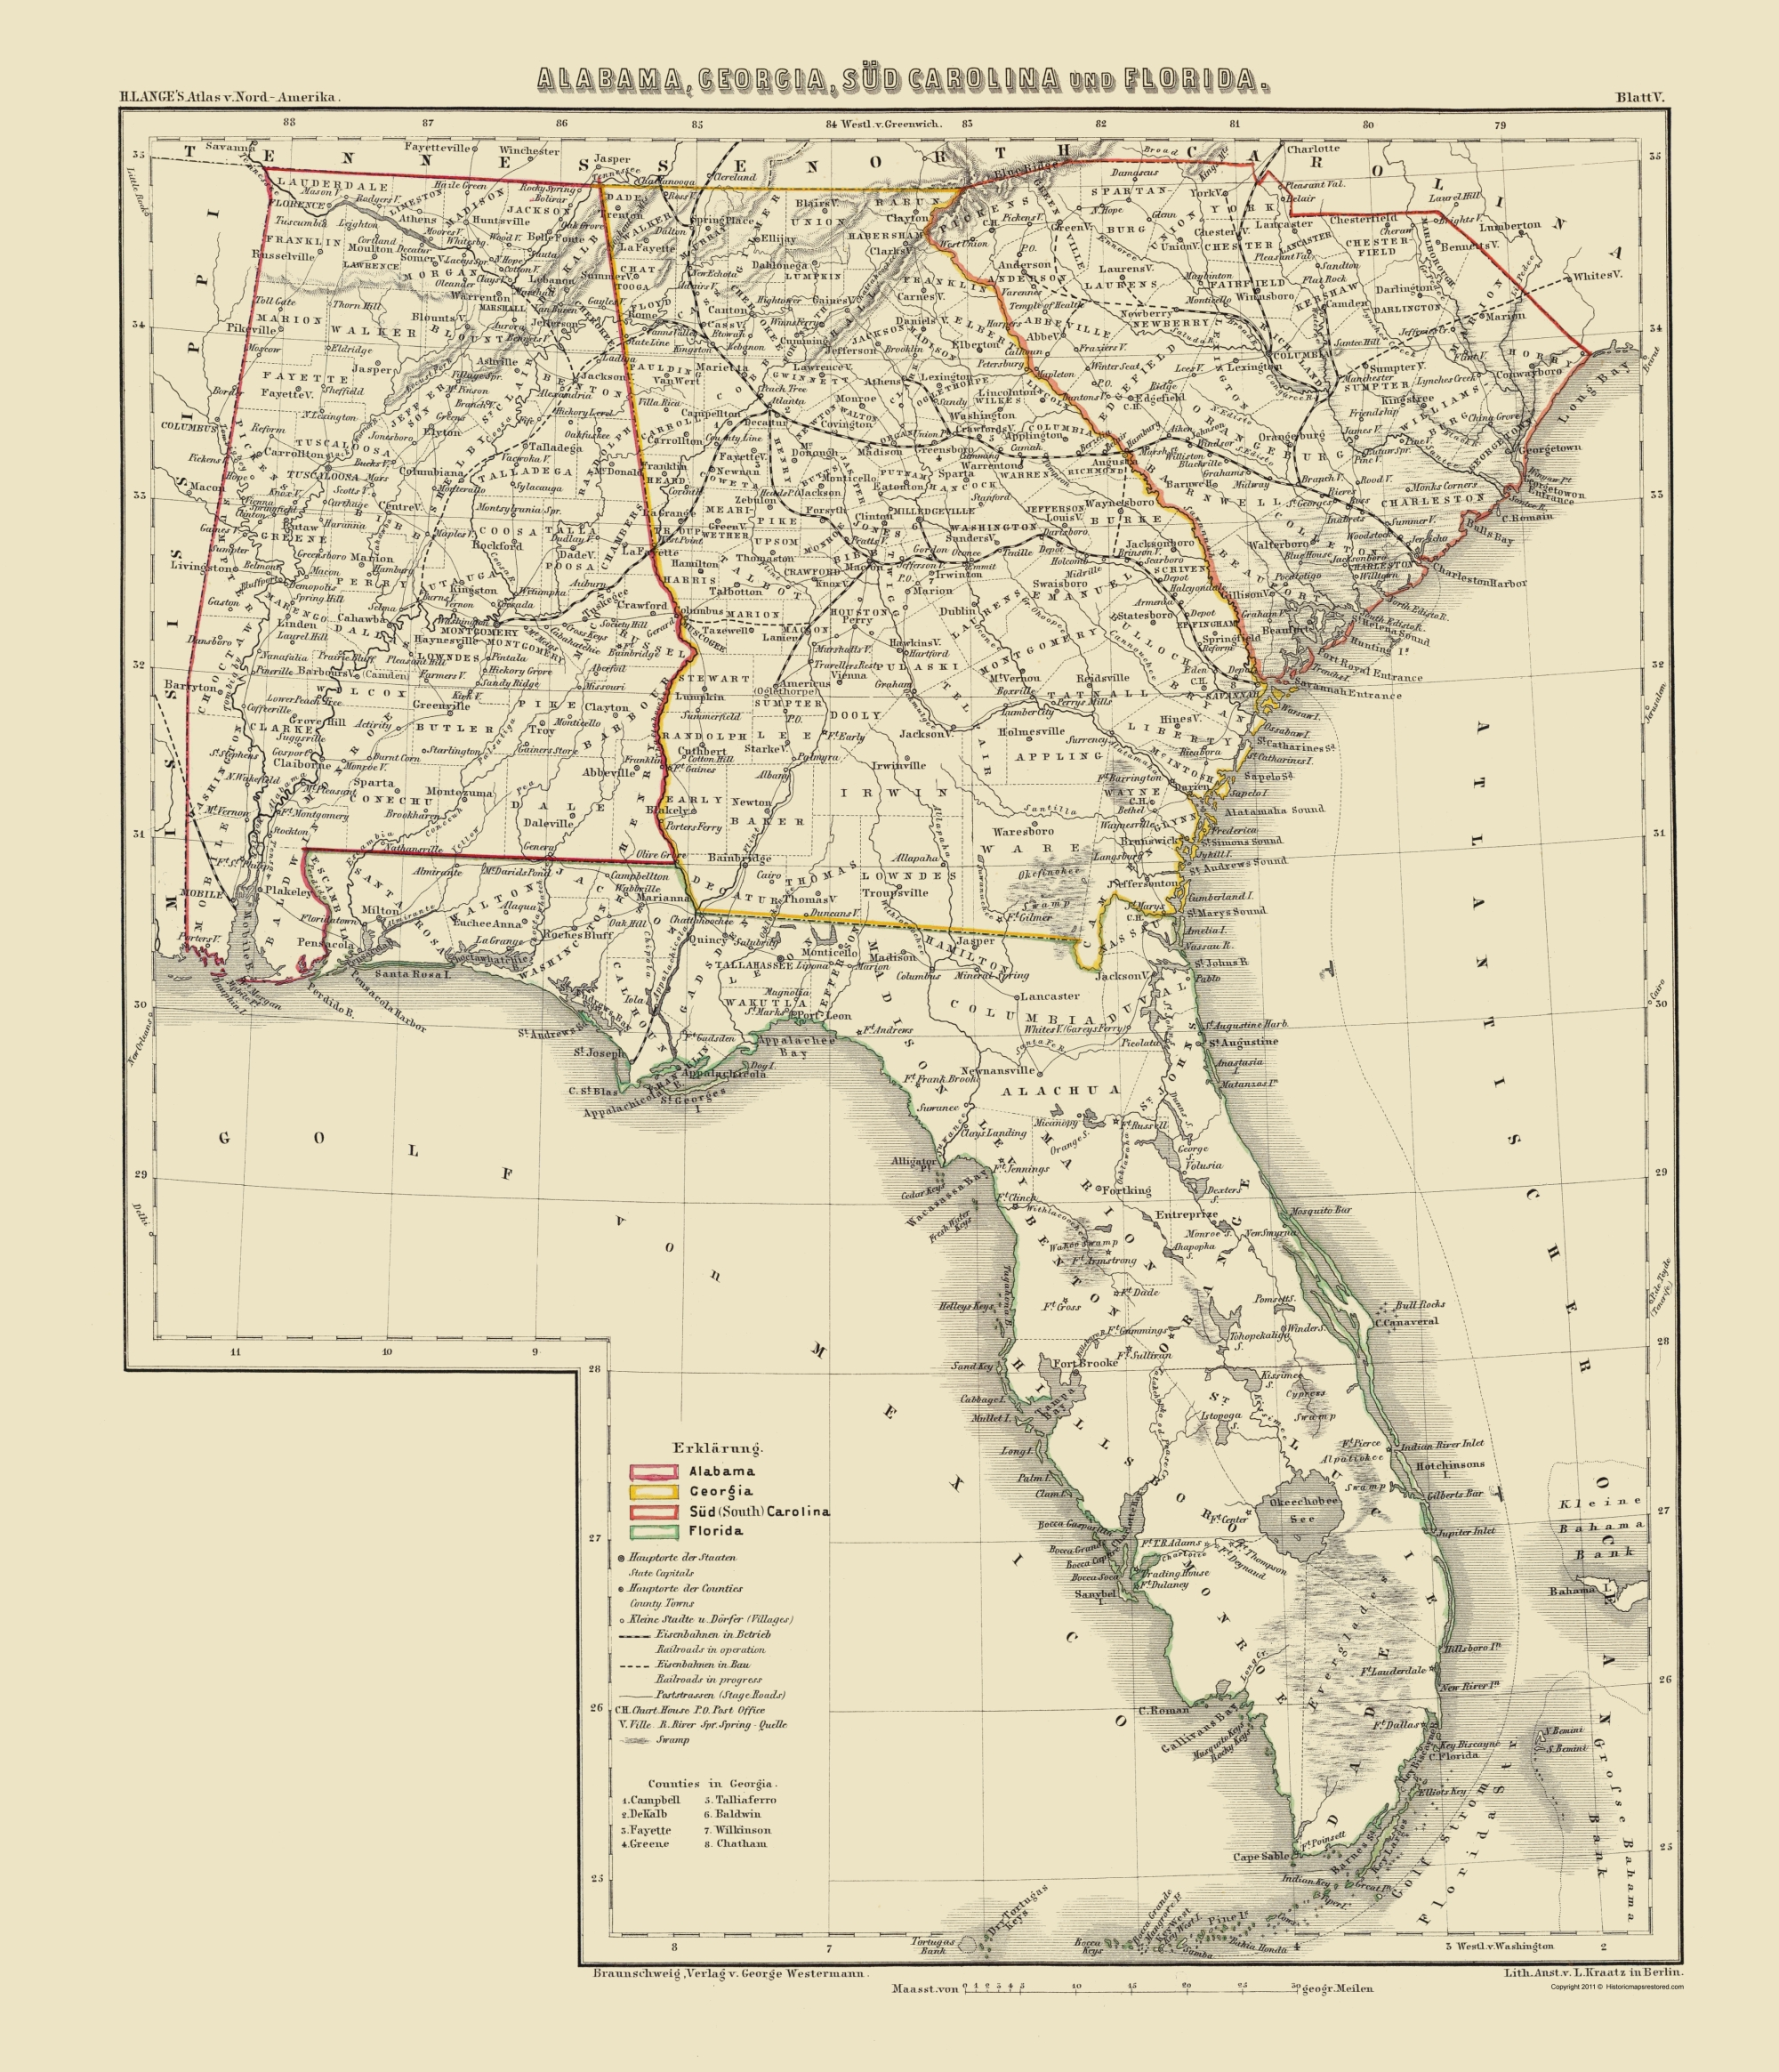 Florida And Georgia Map.Old Map Alabama Georgia South Carolina Florida 1854